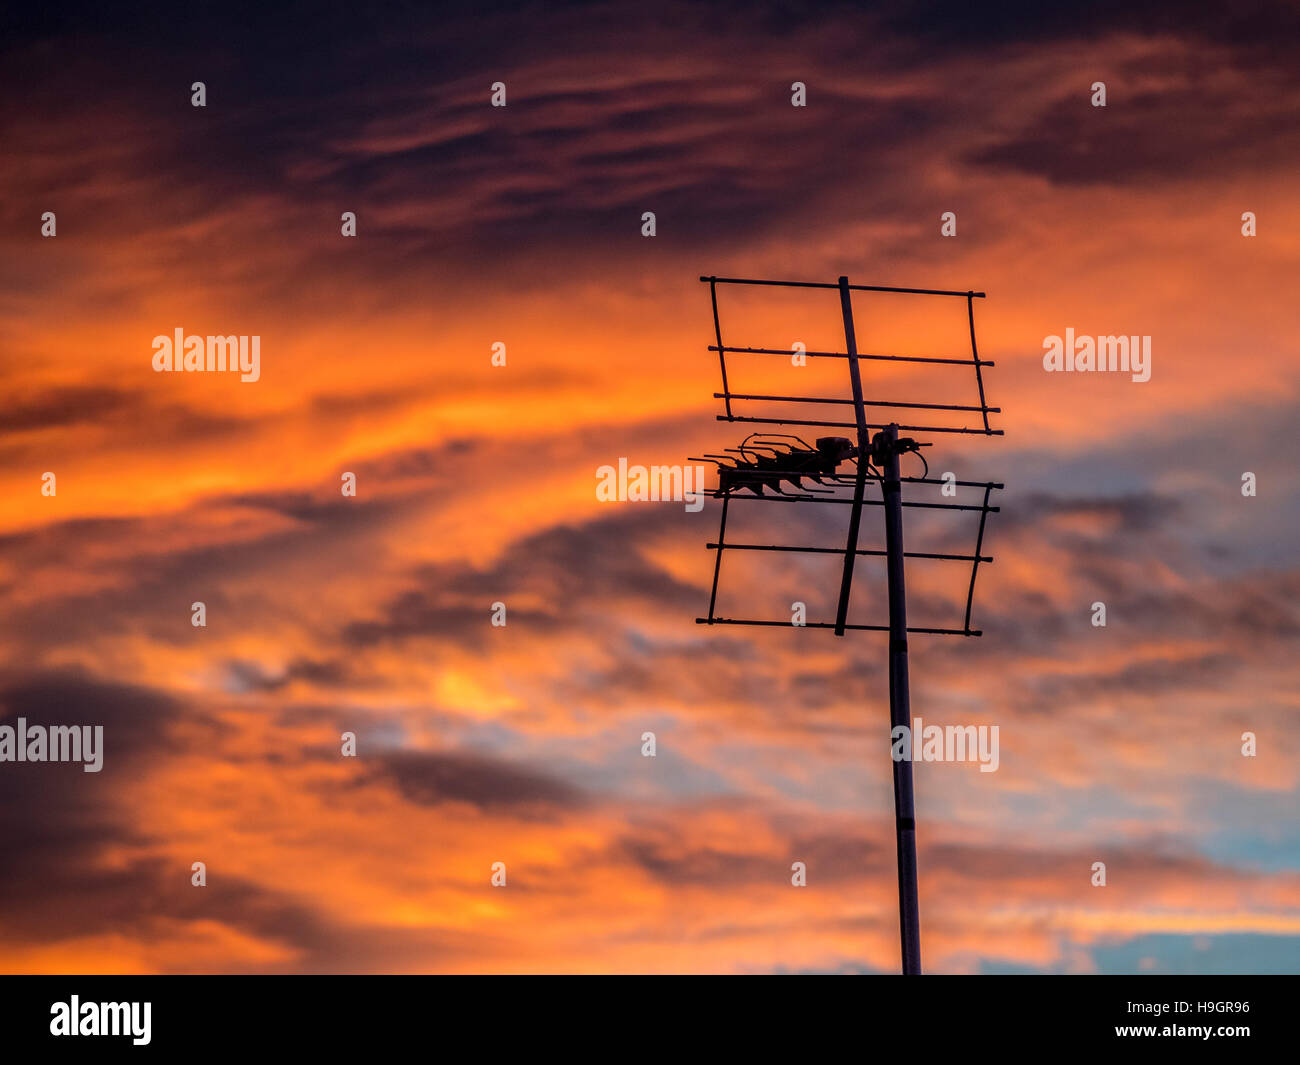 Silhouette of TV aerial against dramatic sunset - Stock Image